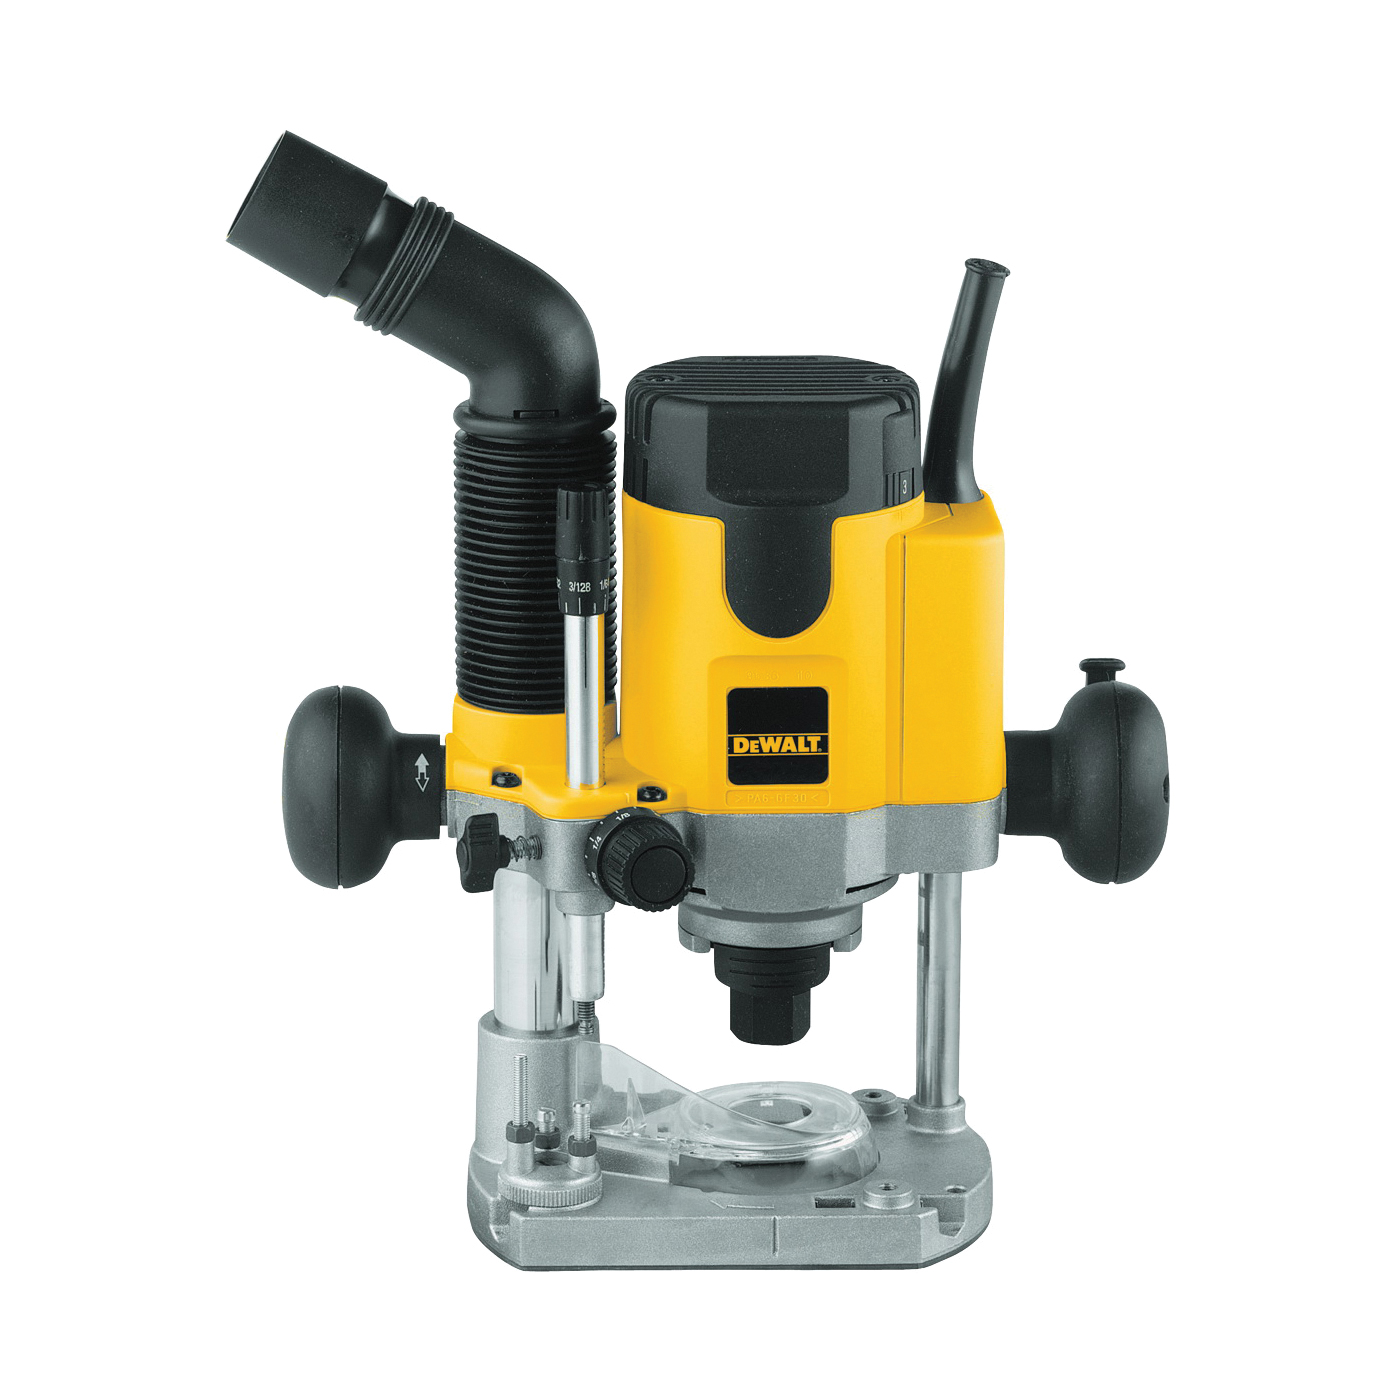 Picture of DeWALT DW621 Plunge Router, 120 V, 10 A, 8000 to 24,000 rpm No Load